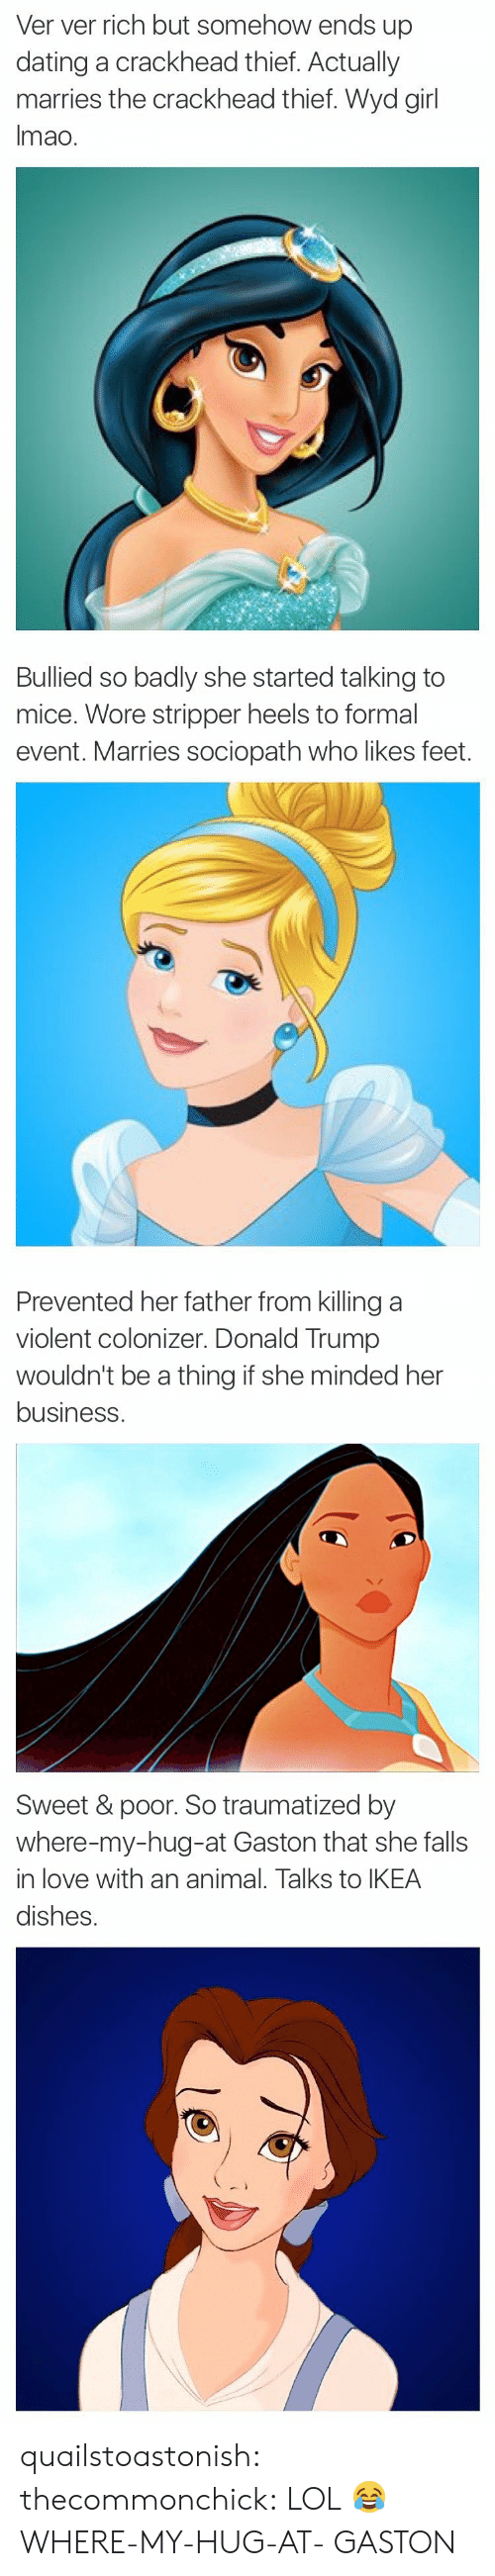 Donald Trump: Ver ver rich but somehow ends up  dating a crackhead thief. Actually  marries the crackhead thief. Wyd girl  Imao.   Bullied so badly she started talking to  mice. Wore stripper heels to formal  event. Marries sociopath who likes feet.   Prevented her father from killing a  violent colonizer. Donald Trump  wouldn't be a thing if she minded her  business   Sweet & poor. So traumatized by  where-my-hug-at Gaston that she falls  in love with an animal. Talks to IKEA  dishes. quailstoastonish: thecommonchick:  LOL😂   WHERE-MY-HUG-AT- GASTON